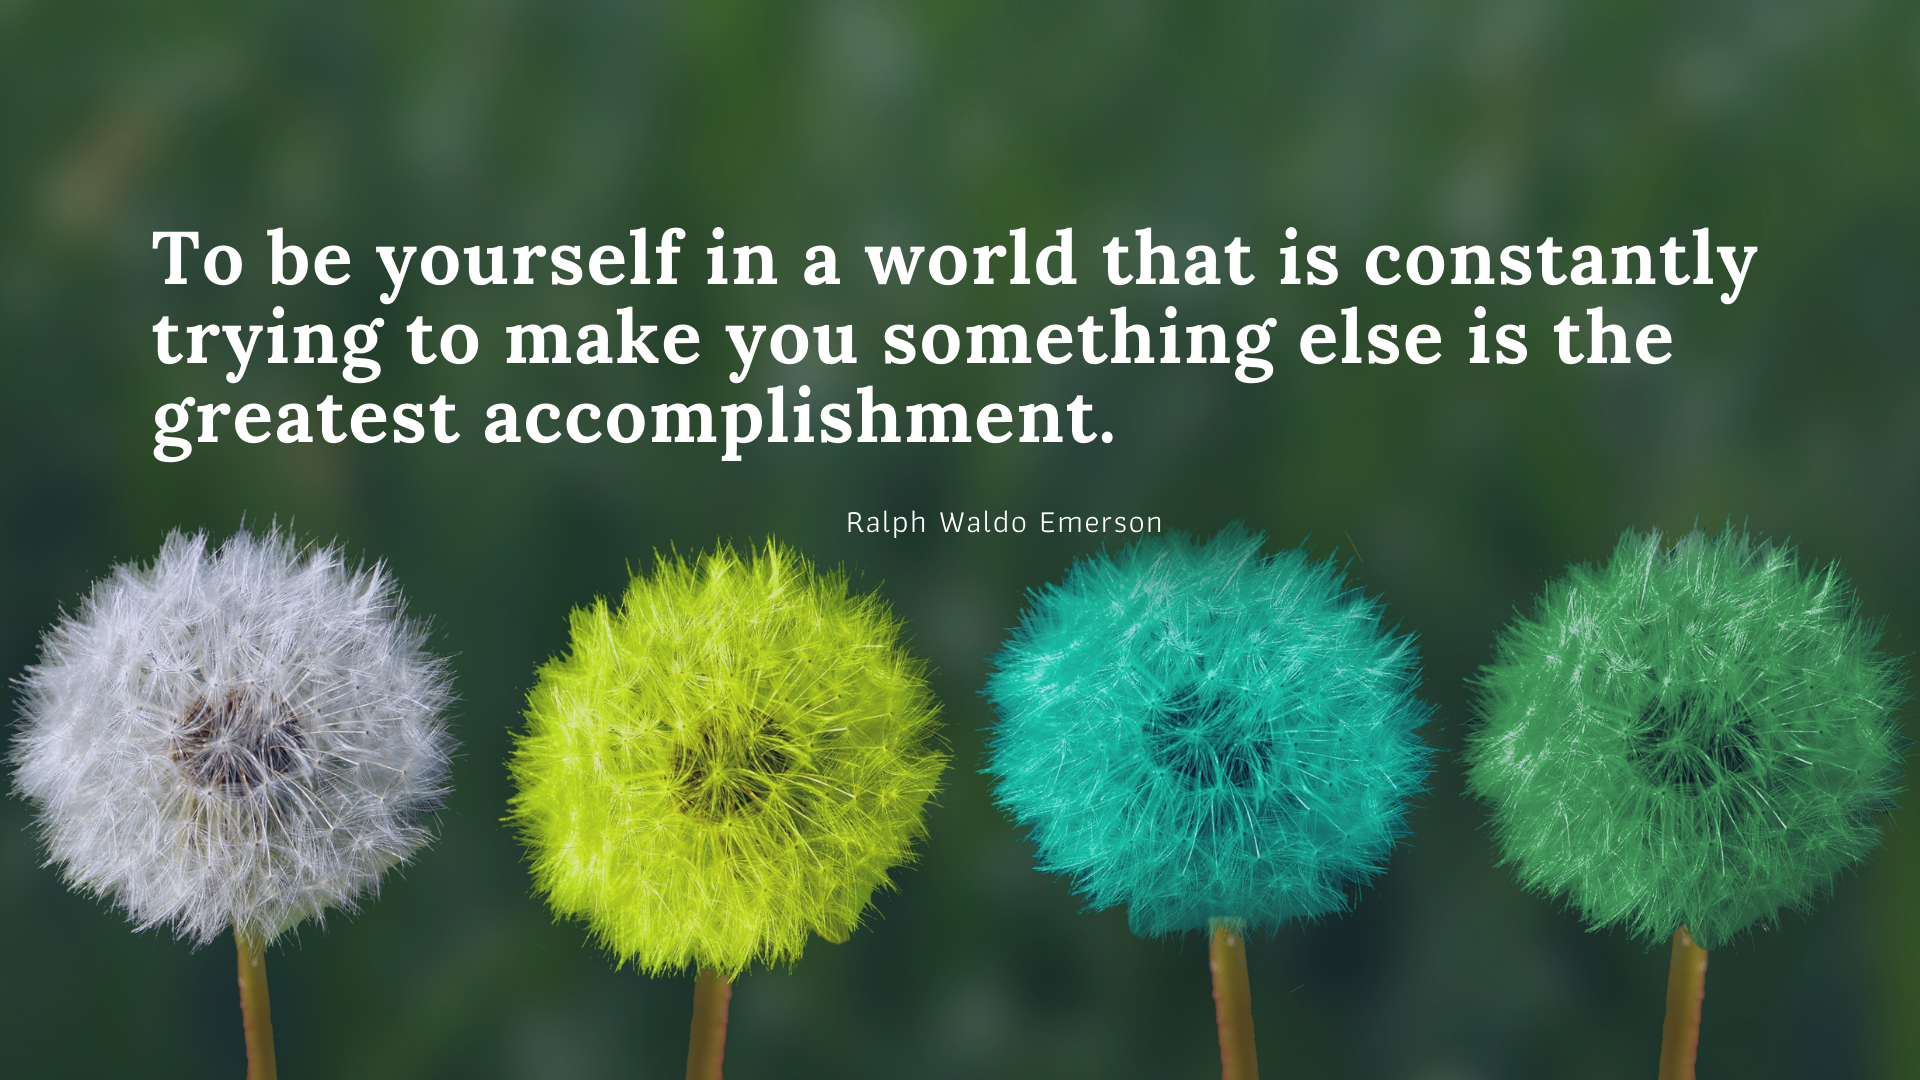 To be yourself in a world that is constantly trying to make you something else is the greatest accomplishment. https://inspirational.ly